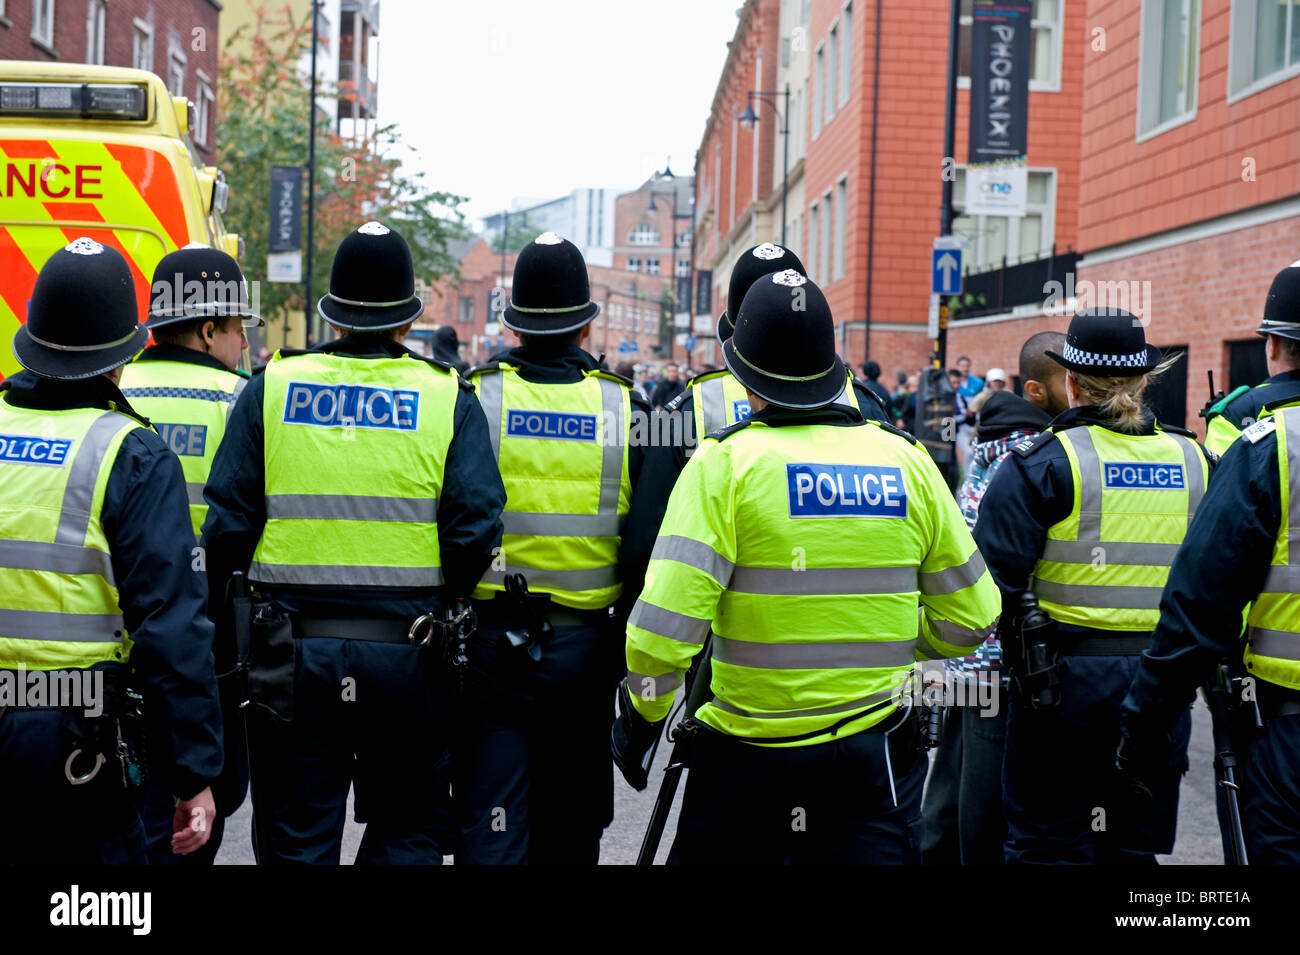 Policing The English Defence League-Demonstration in Leicester. 9. Oktober 2010. Stockbild